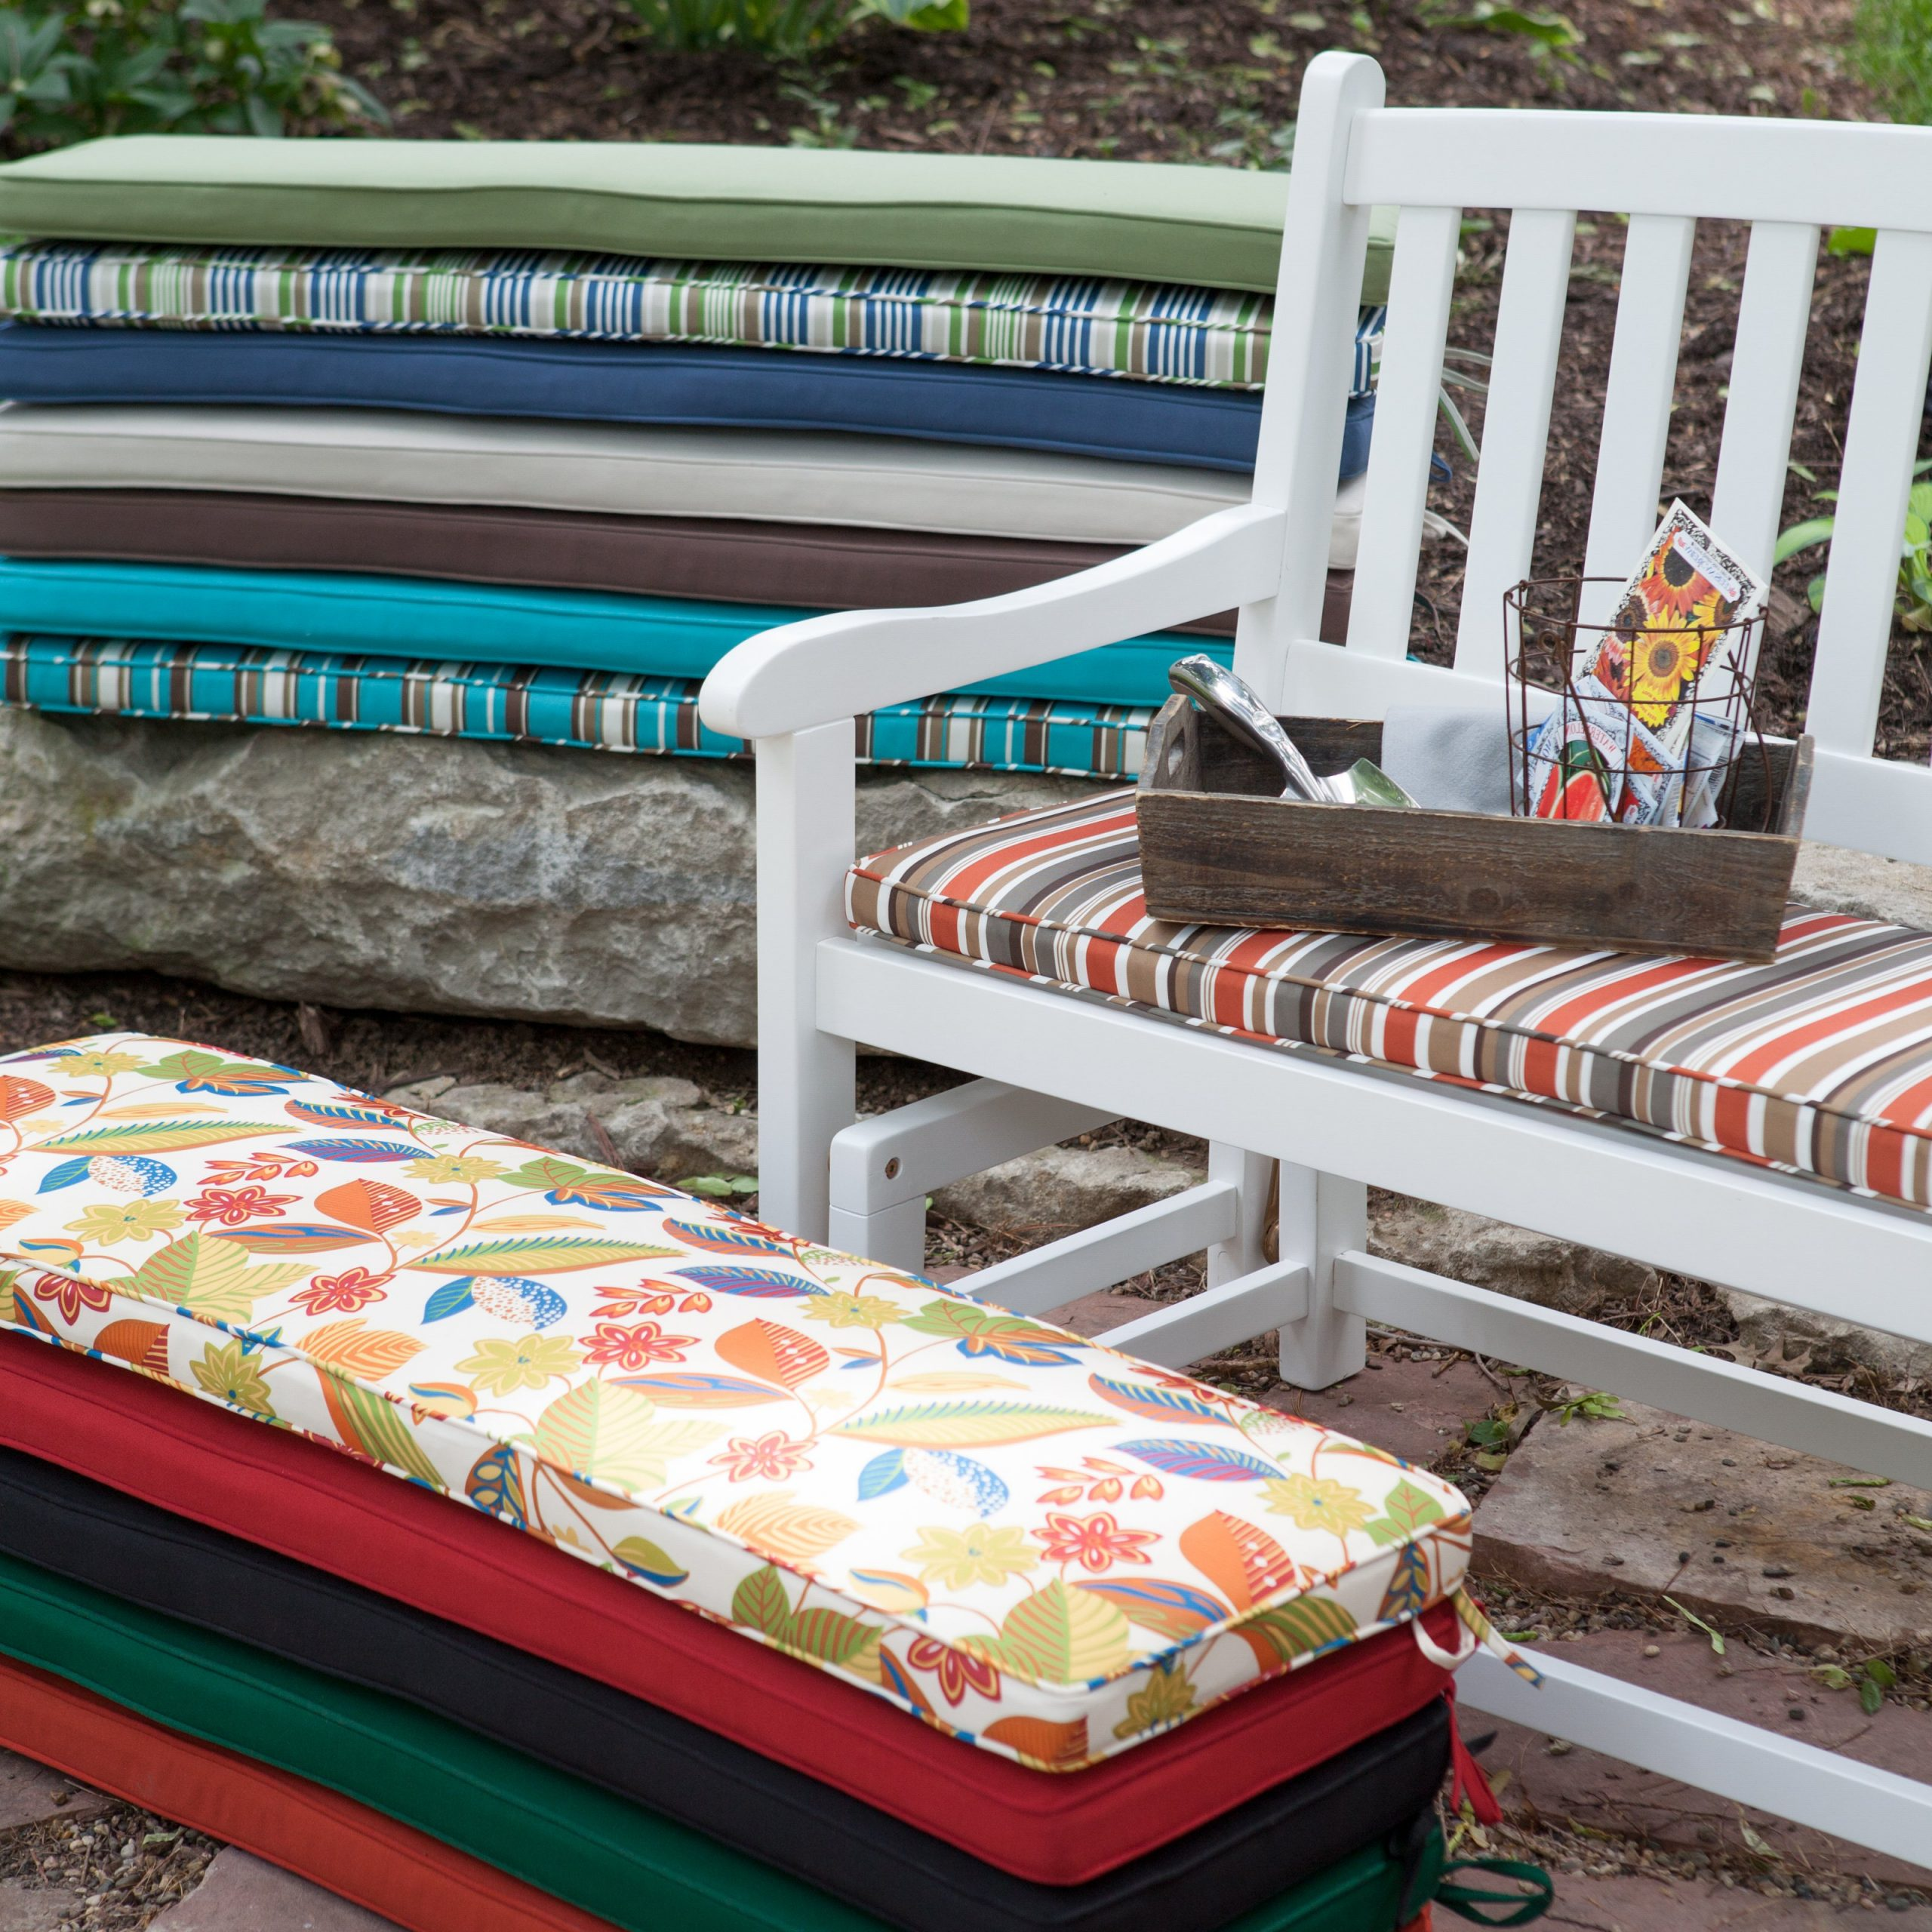 Glider Benches With Cushions In Preferred Furniture: Vintage Aluminum Porch Glider With Cushions For (View 10 of 30)